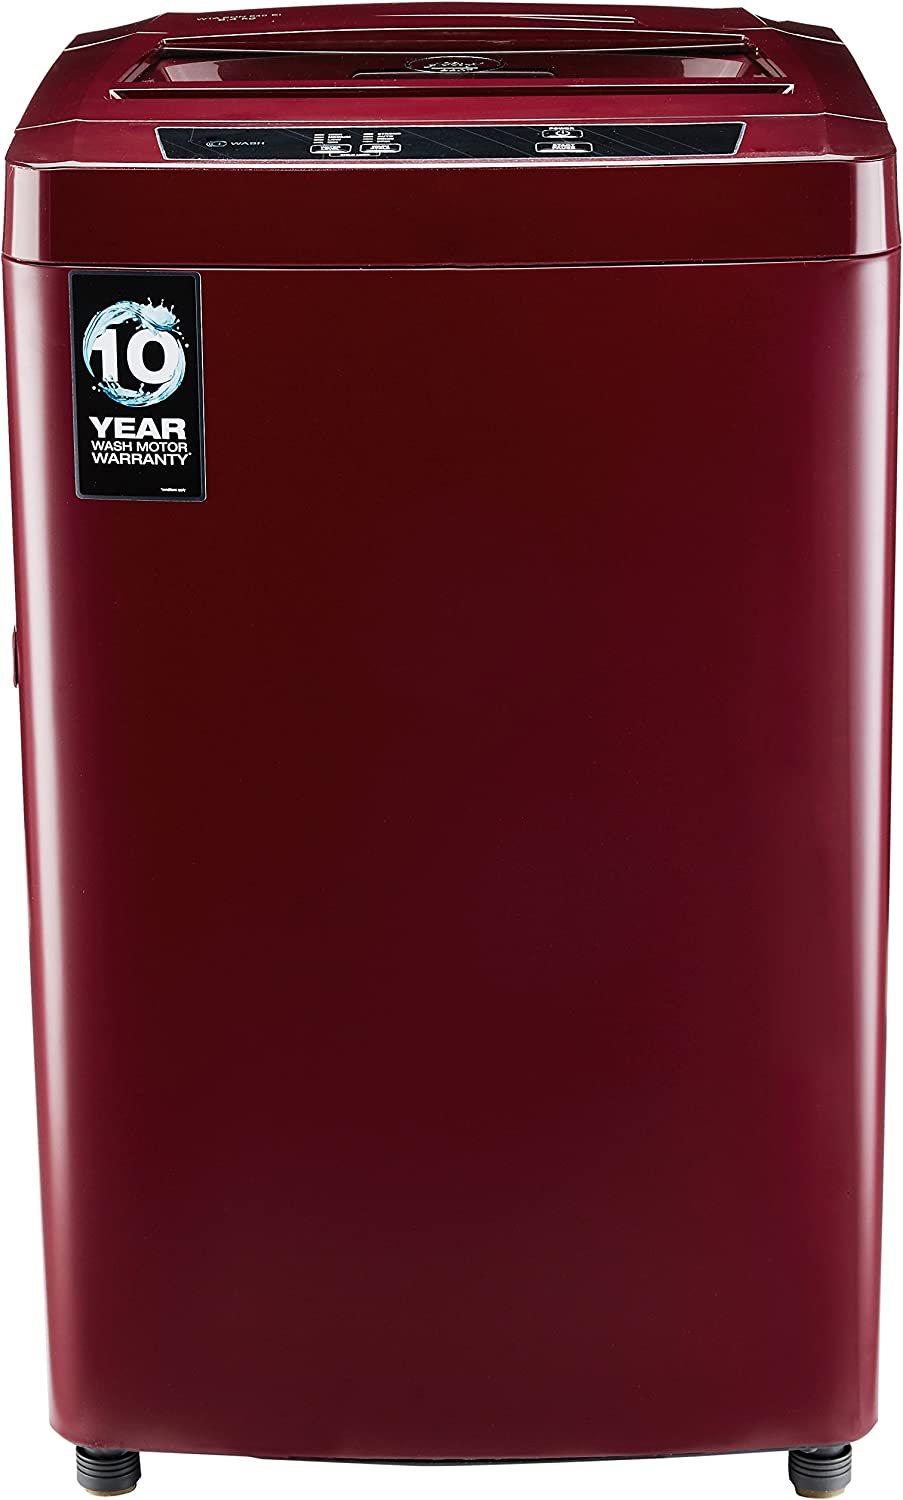 Godrej 6.4 kg Fully-Automatic Top Loading Washing Machine (WTA 640 EI, Autumn Red)